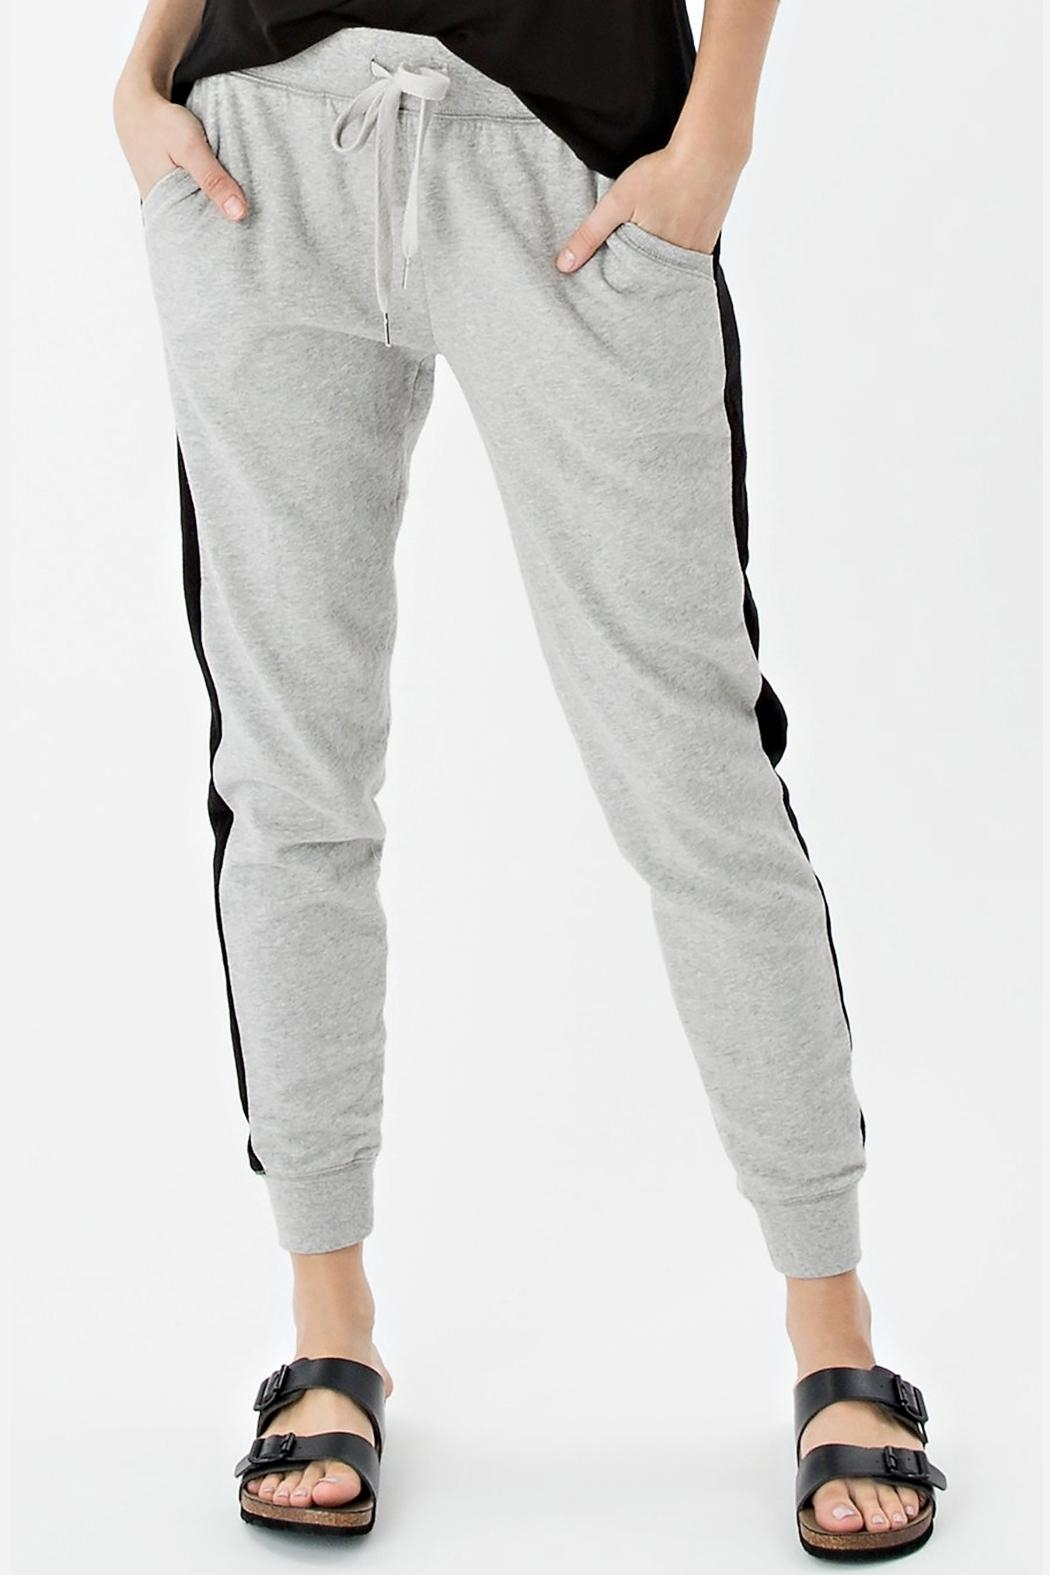 z supply Athleisure Jogger Pant - Main Image